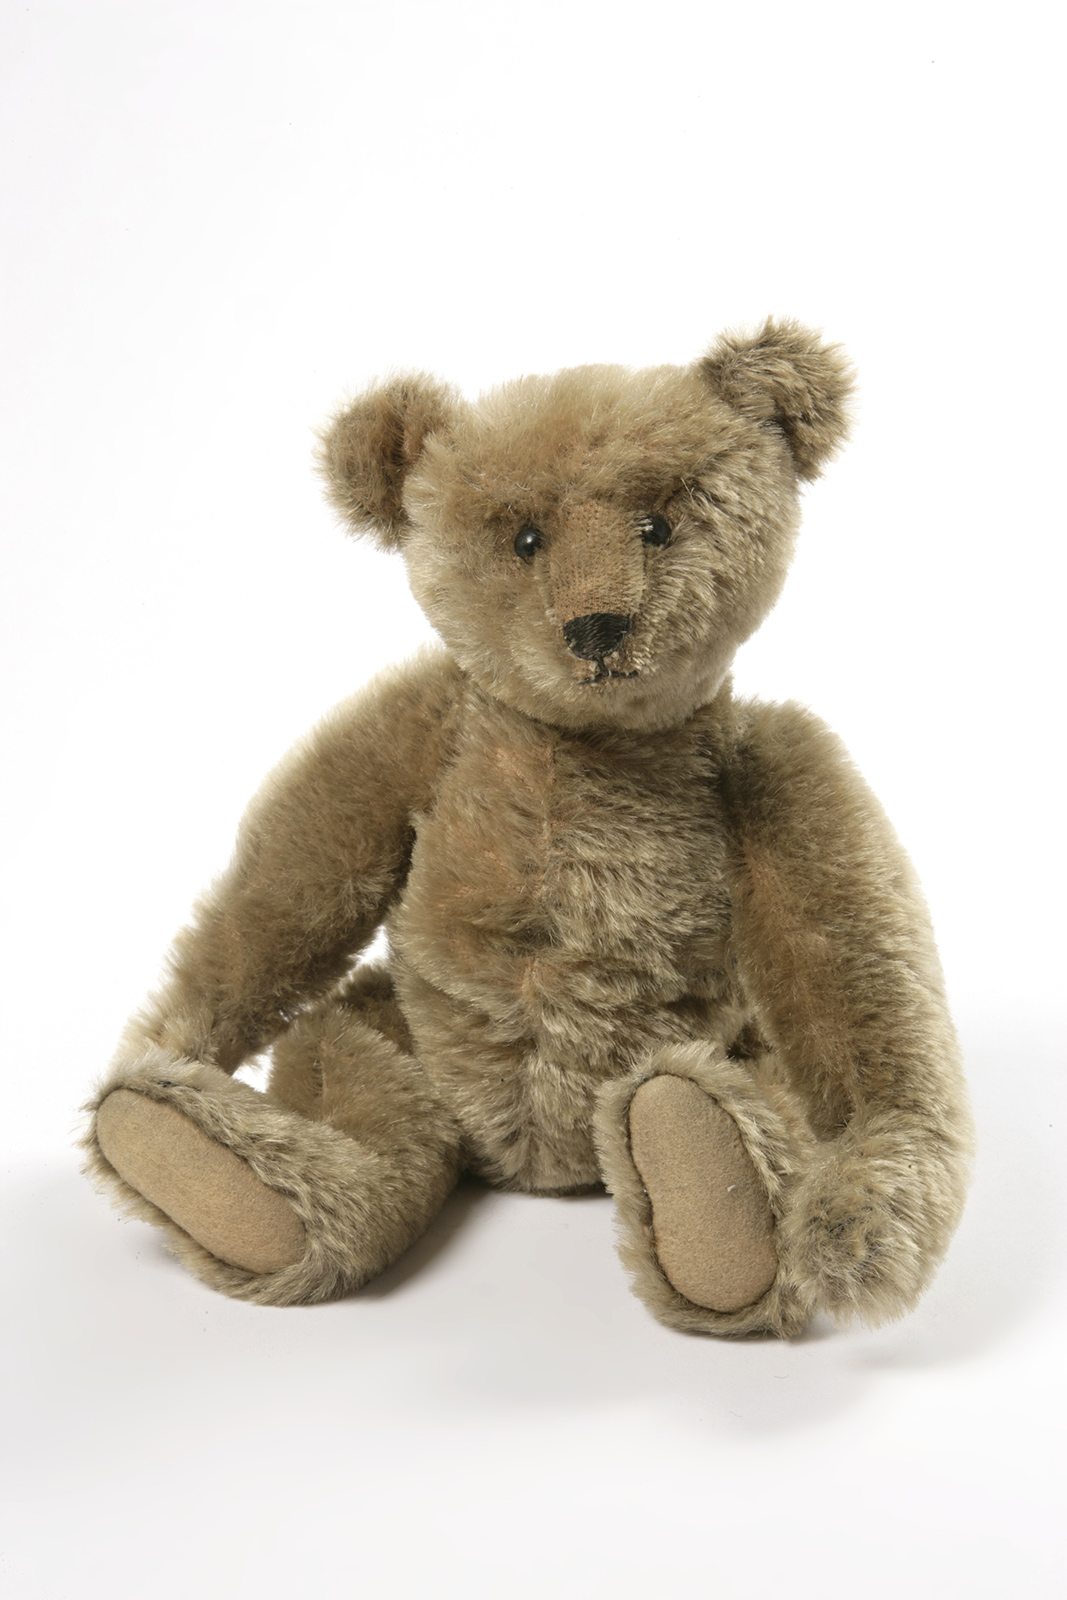 Early teddy bear named after Winnie